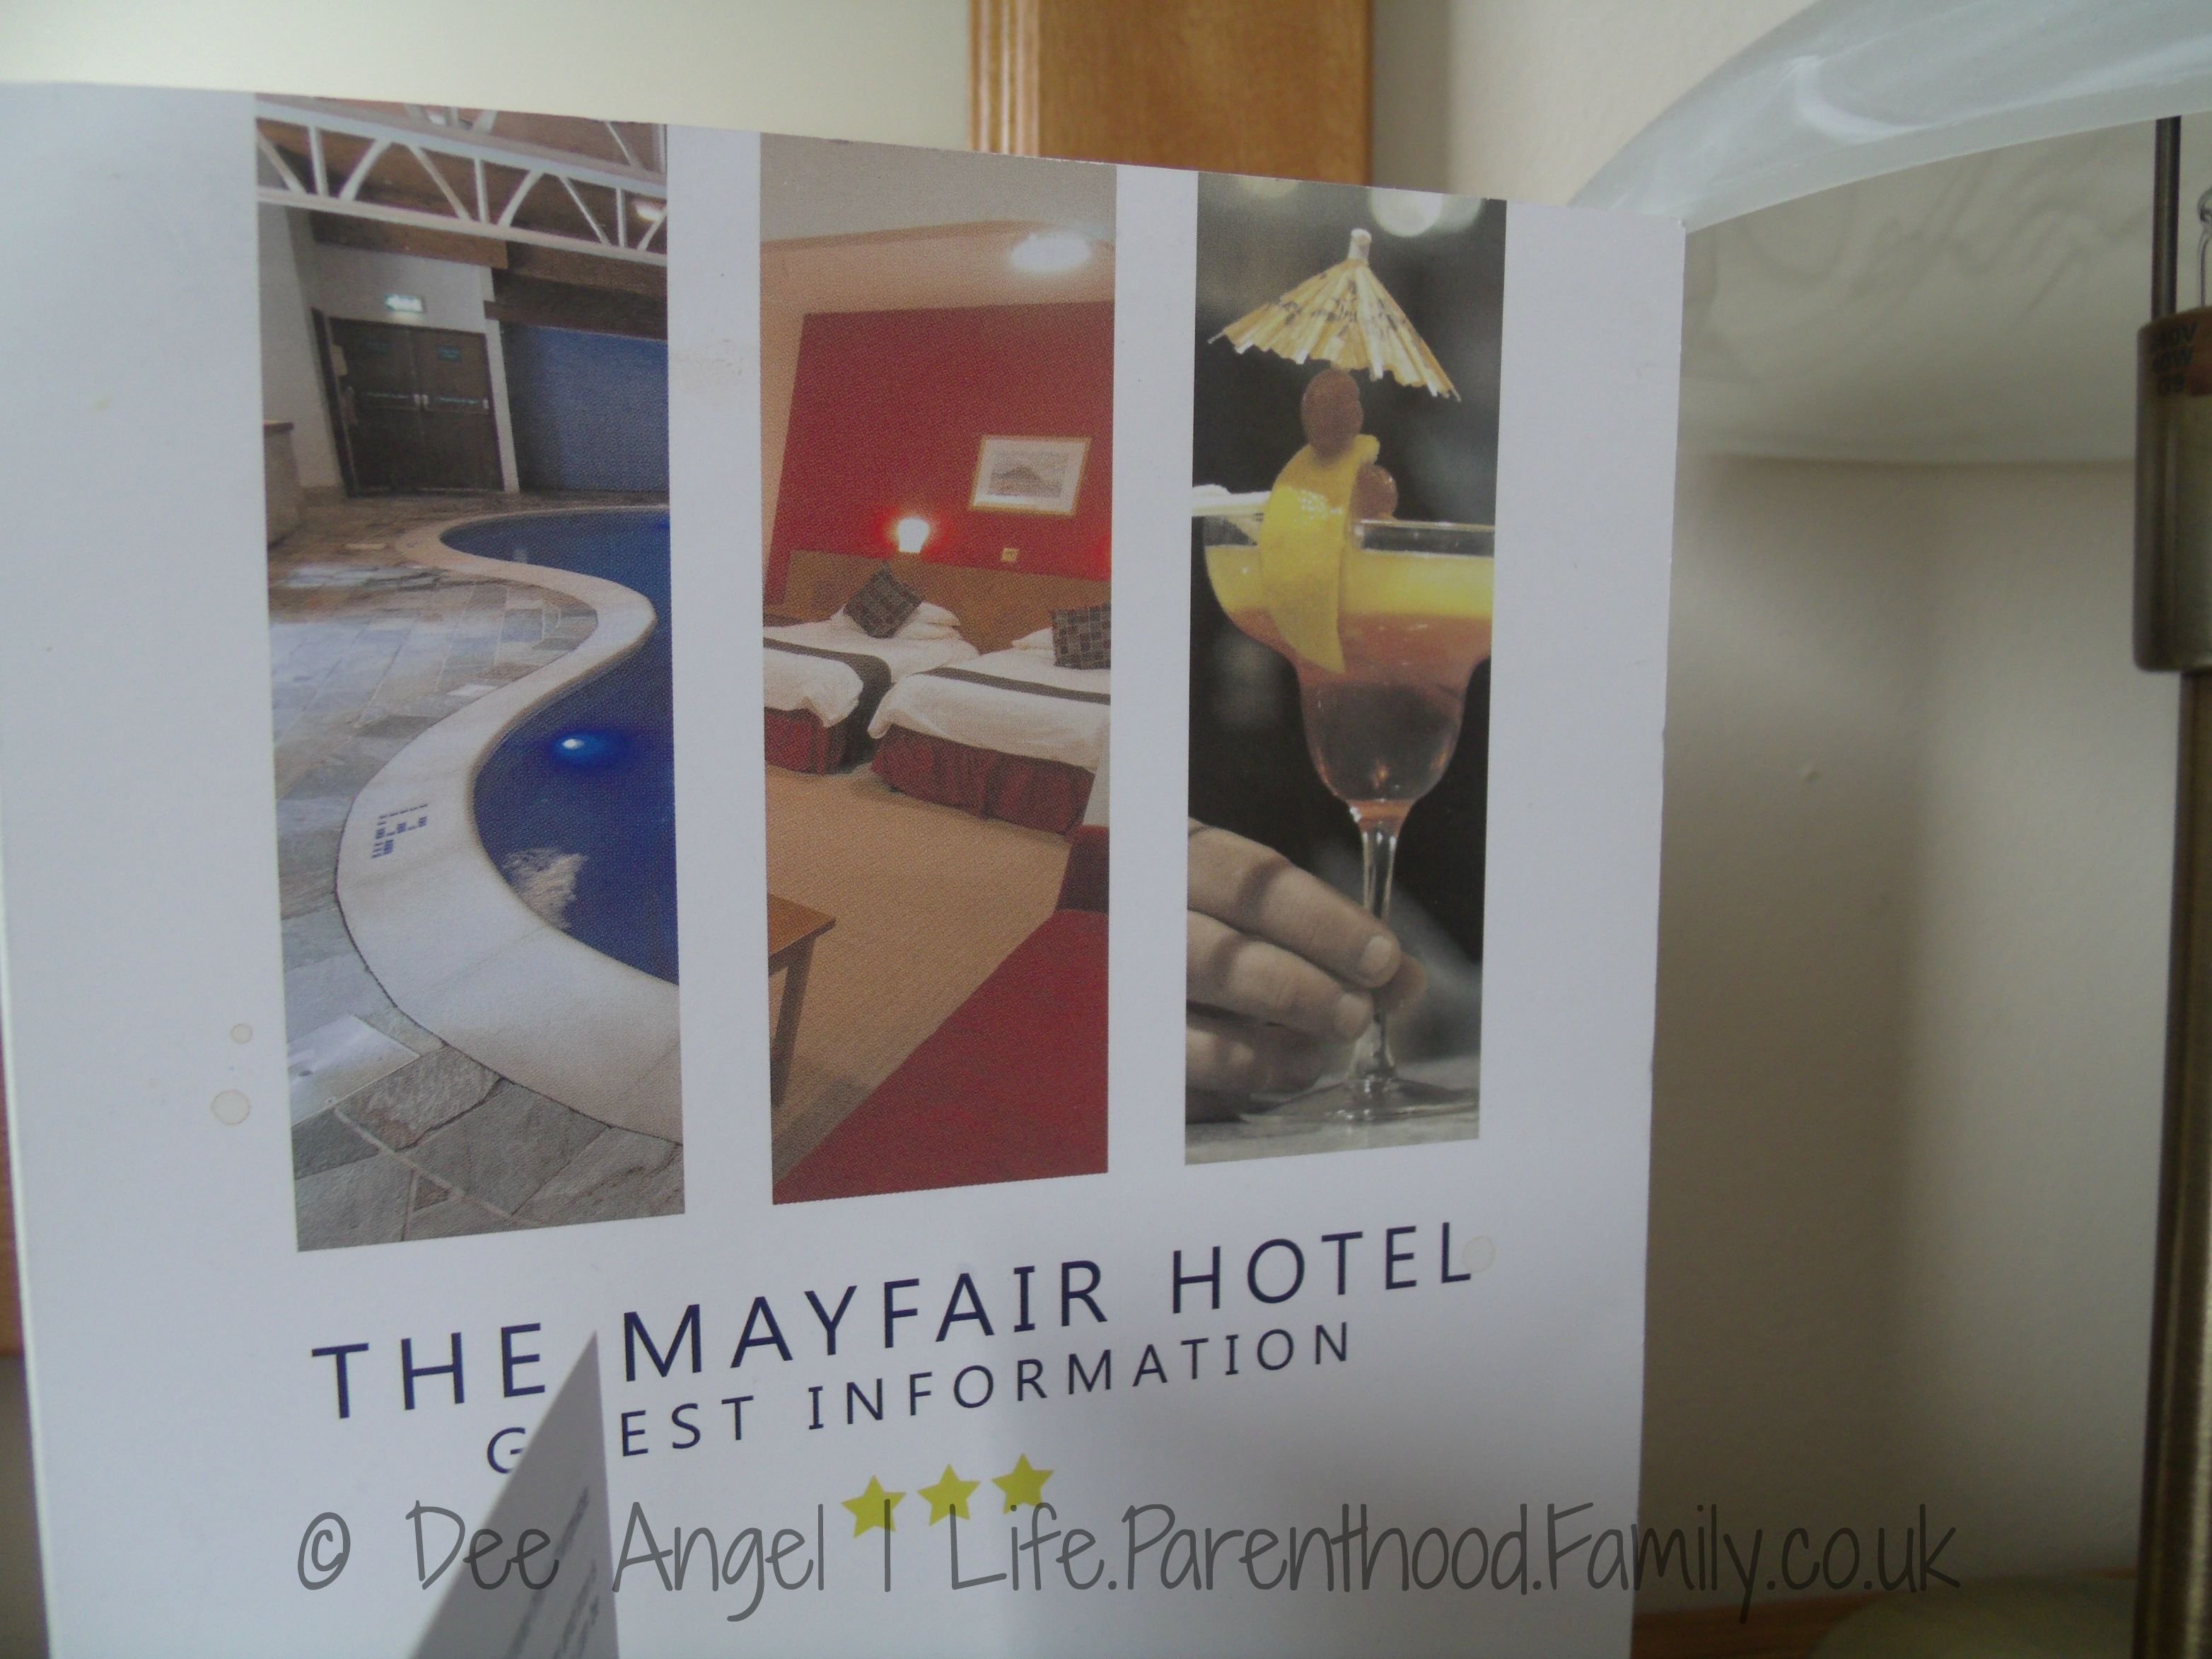 The Mayfair Hotel in Jersey| Life.Parenthood.Family.co.uk